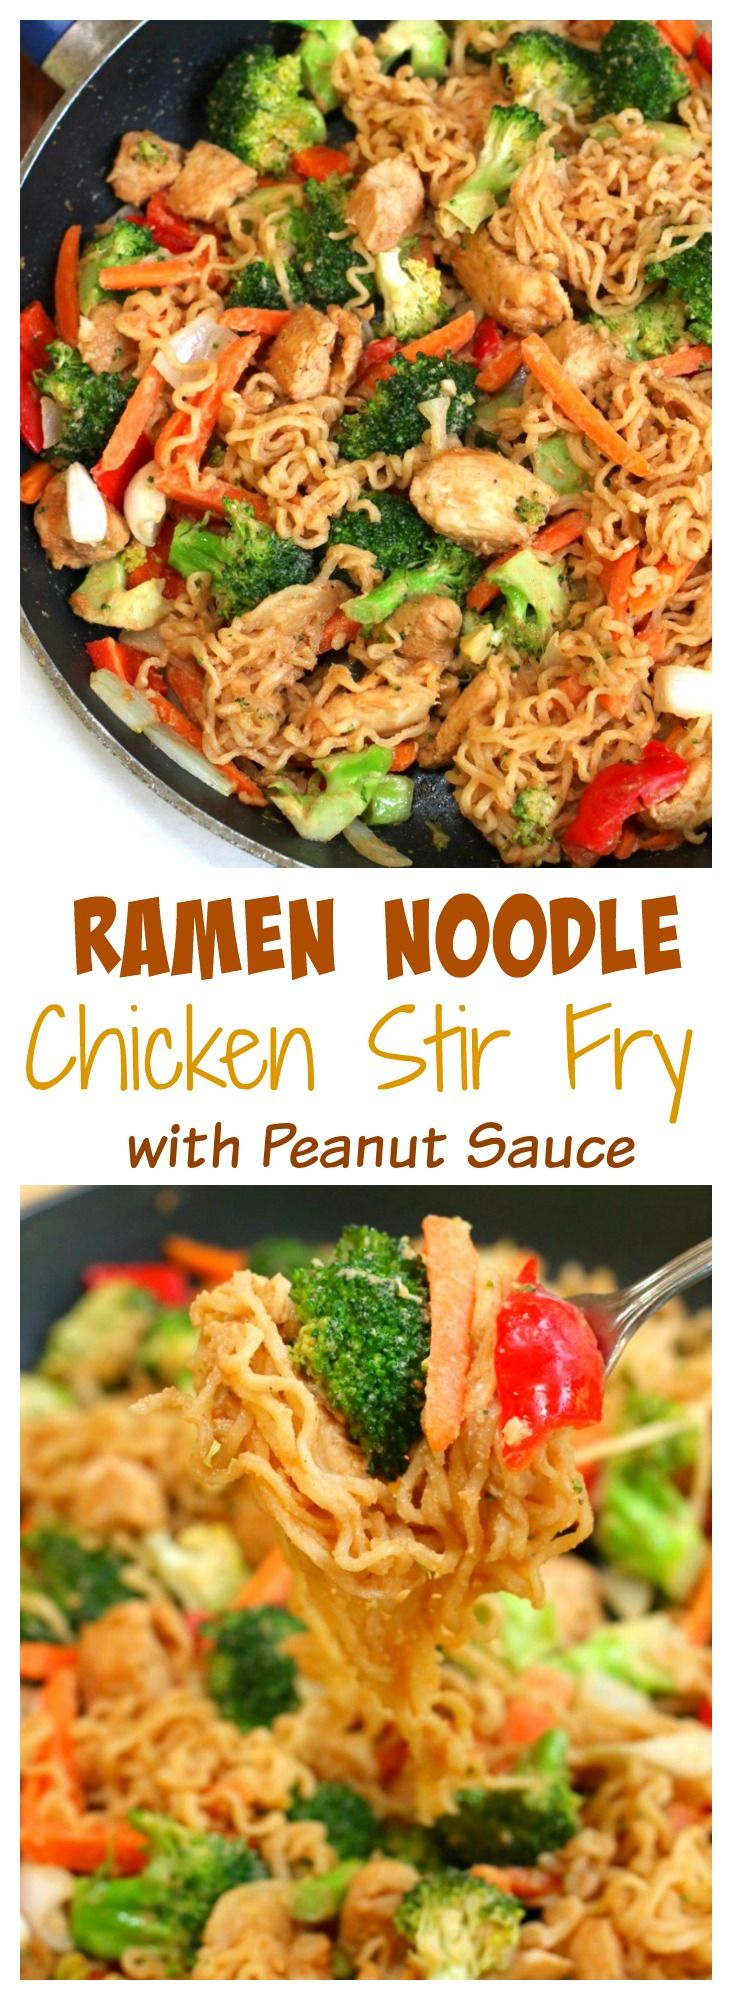 Tasty noodles & chicken covered in a savory peanut sauce & tossed with fresh vegetables.